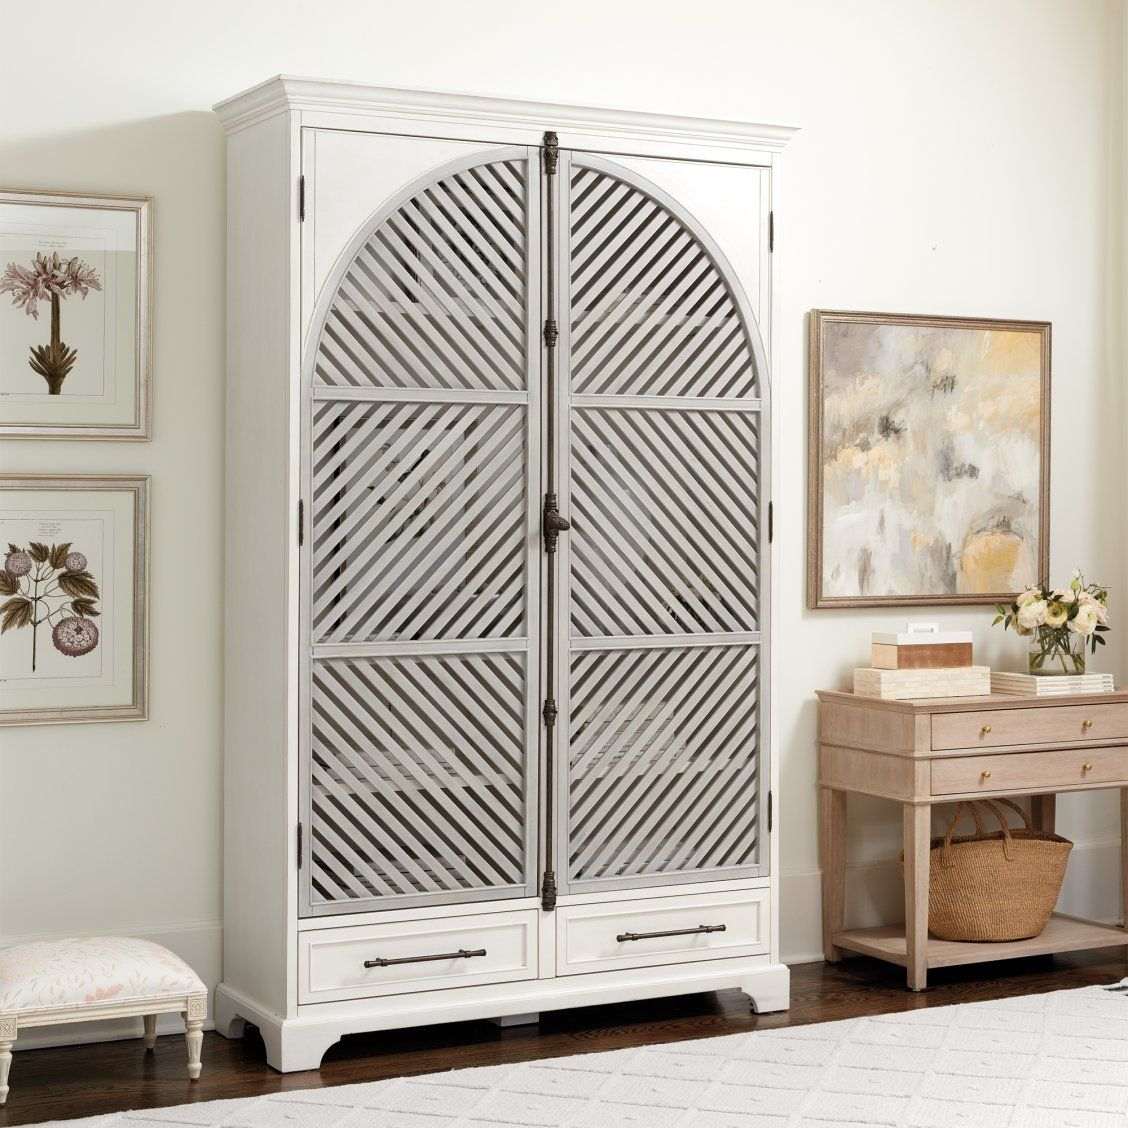 Palermo Tall Storage Cabinet Tall Cabinet Storage Living Room